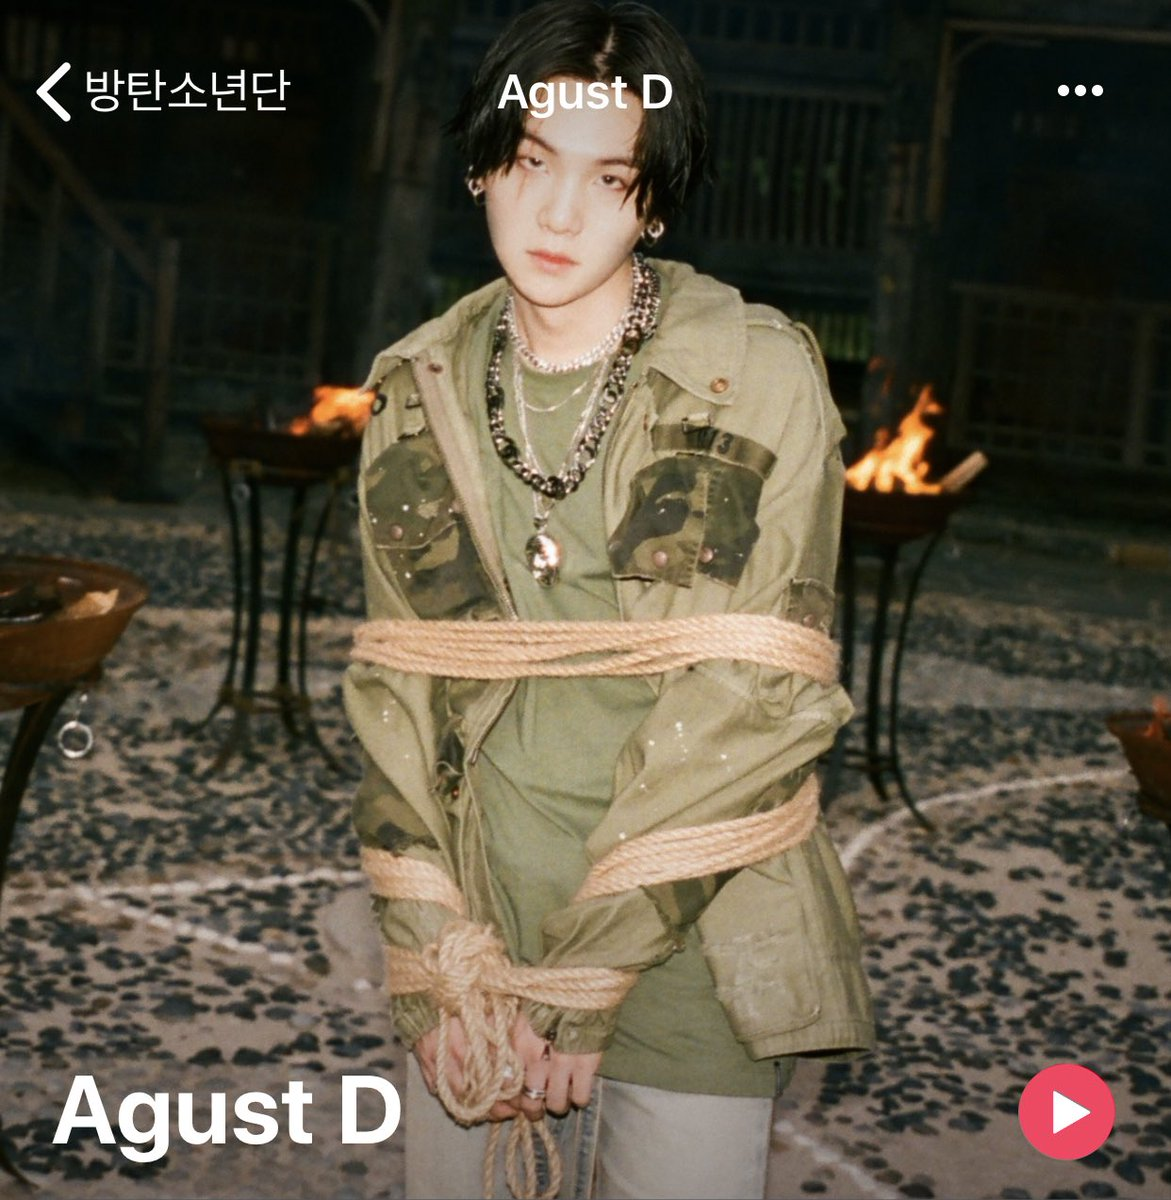 so,, agust d's model was the same as scar from simba?? like, they're both black-haired and both have scars on their eyes?<br>http://pic.twitter.com/qs8bq61KtC